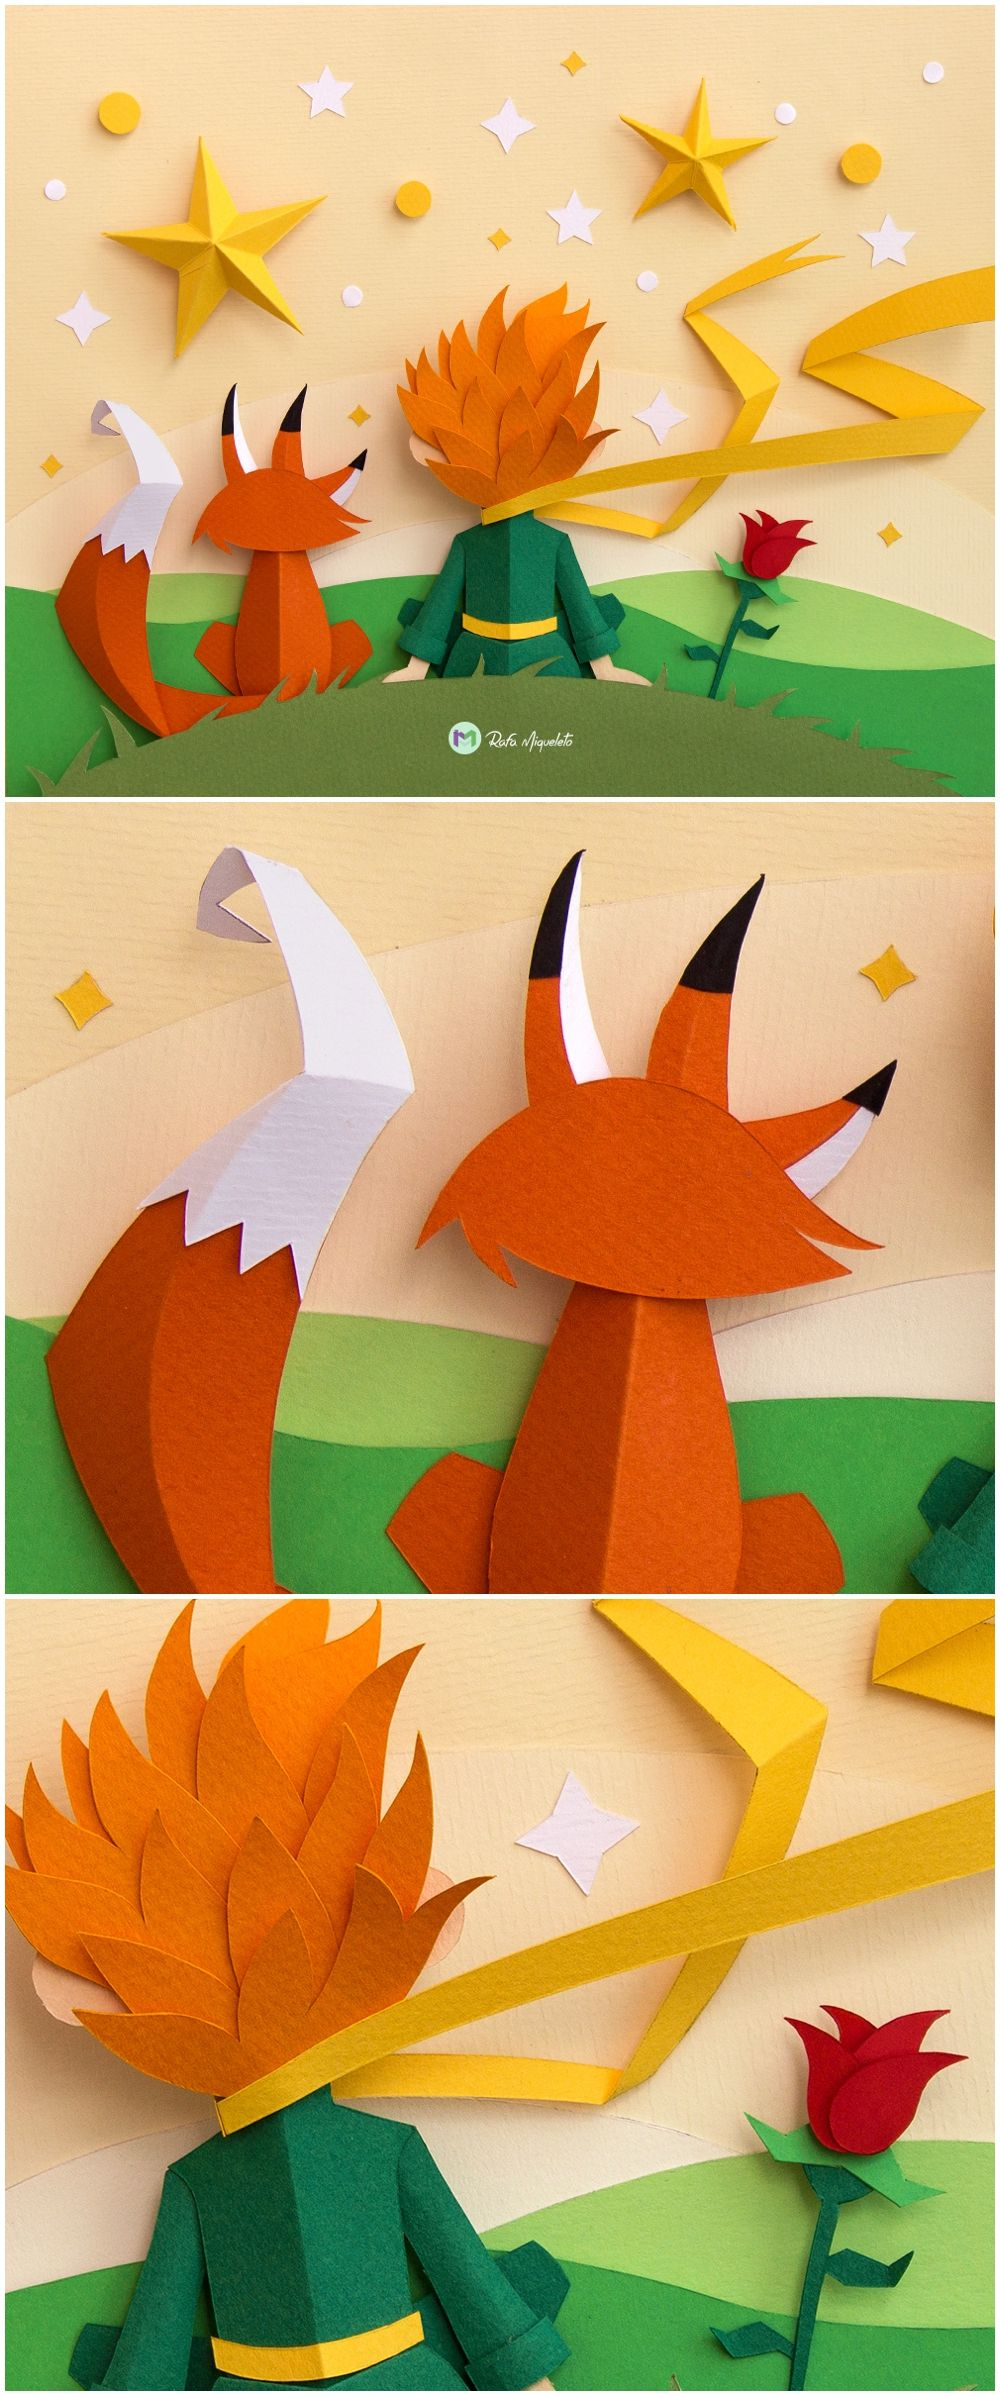 beautiful paper art inspired by the little prince | <3 | pinterest